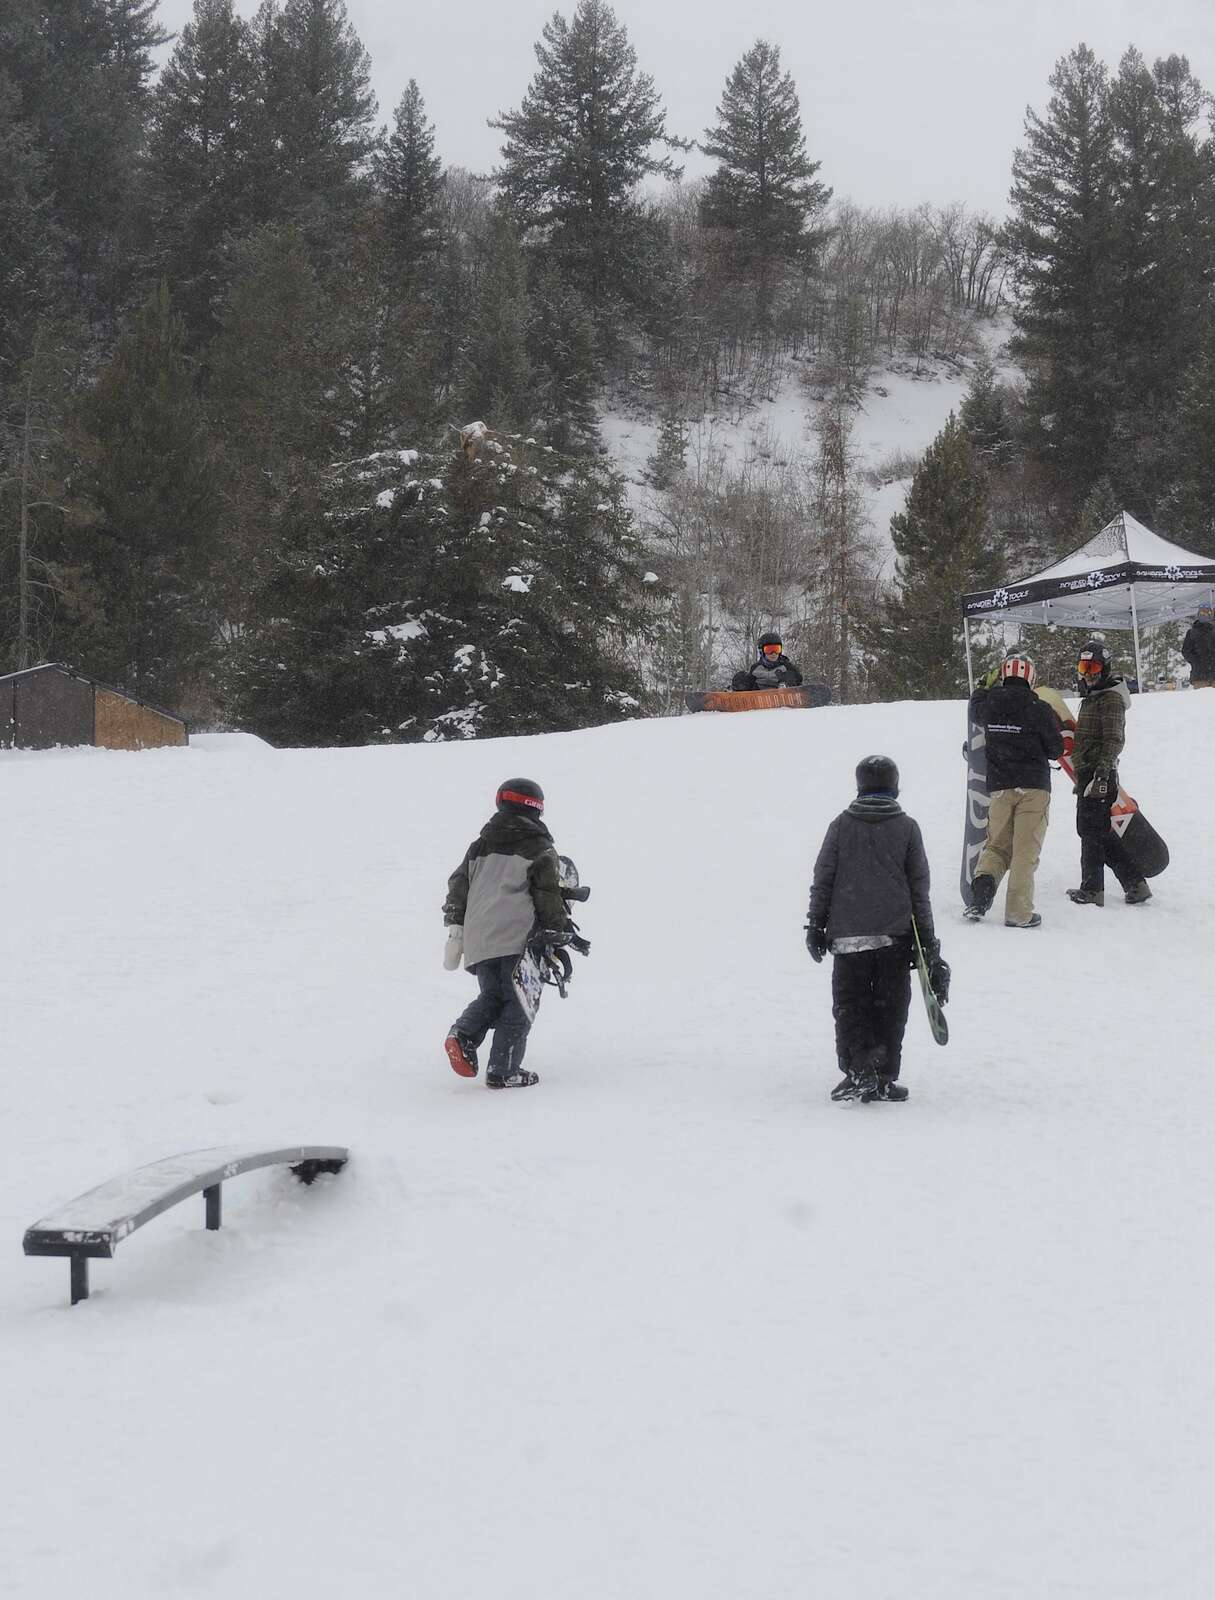 Snowboarders and skiers of all ages and abilities gathered Saturday at Howelsen Hill at a free, public rail jam.